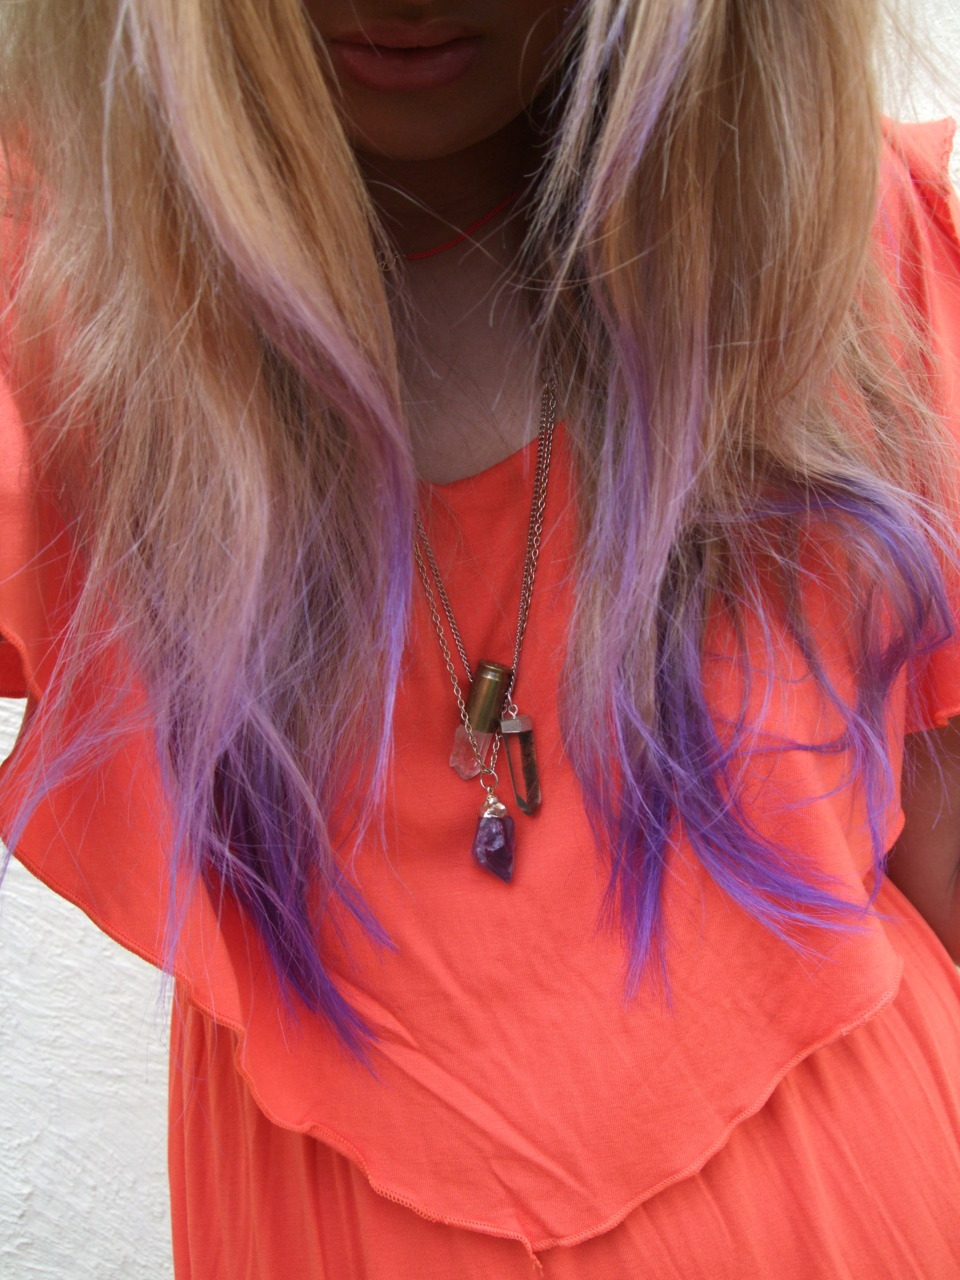 threedeadkings:  My new purple (it is more lavender in person) ombre hair, I got bored last night and found an old pot of dye and this is the result!